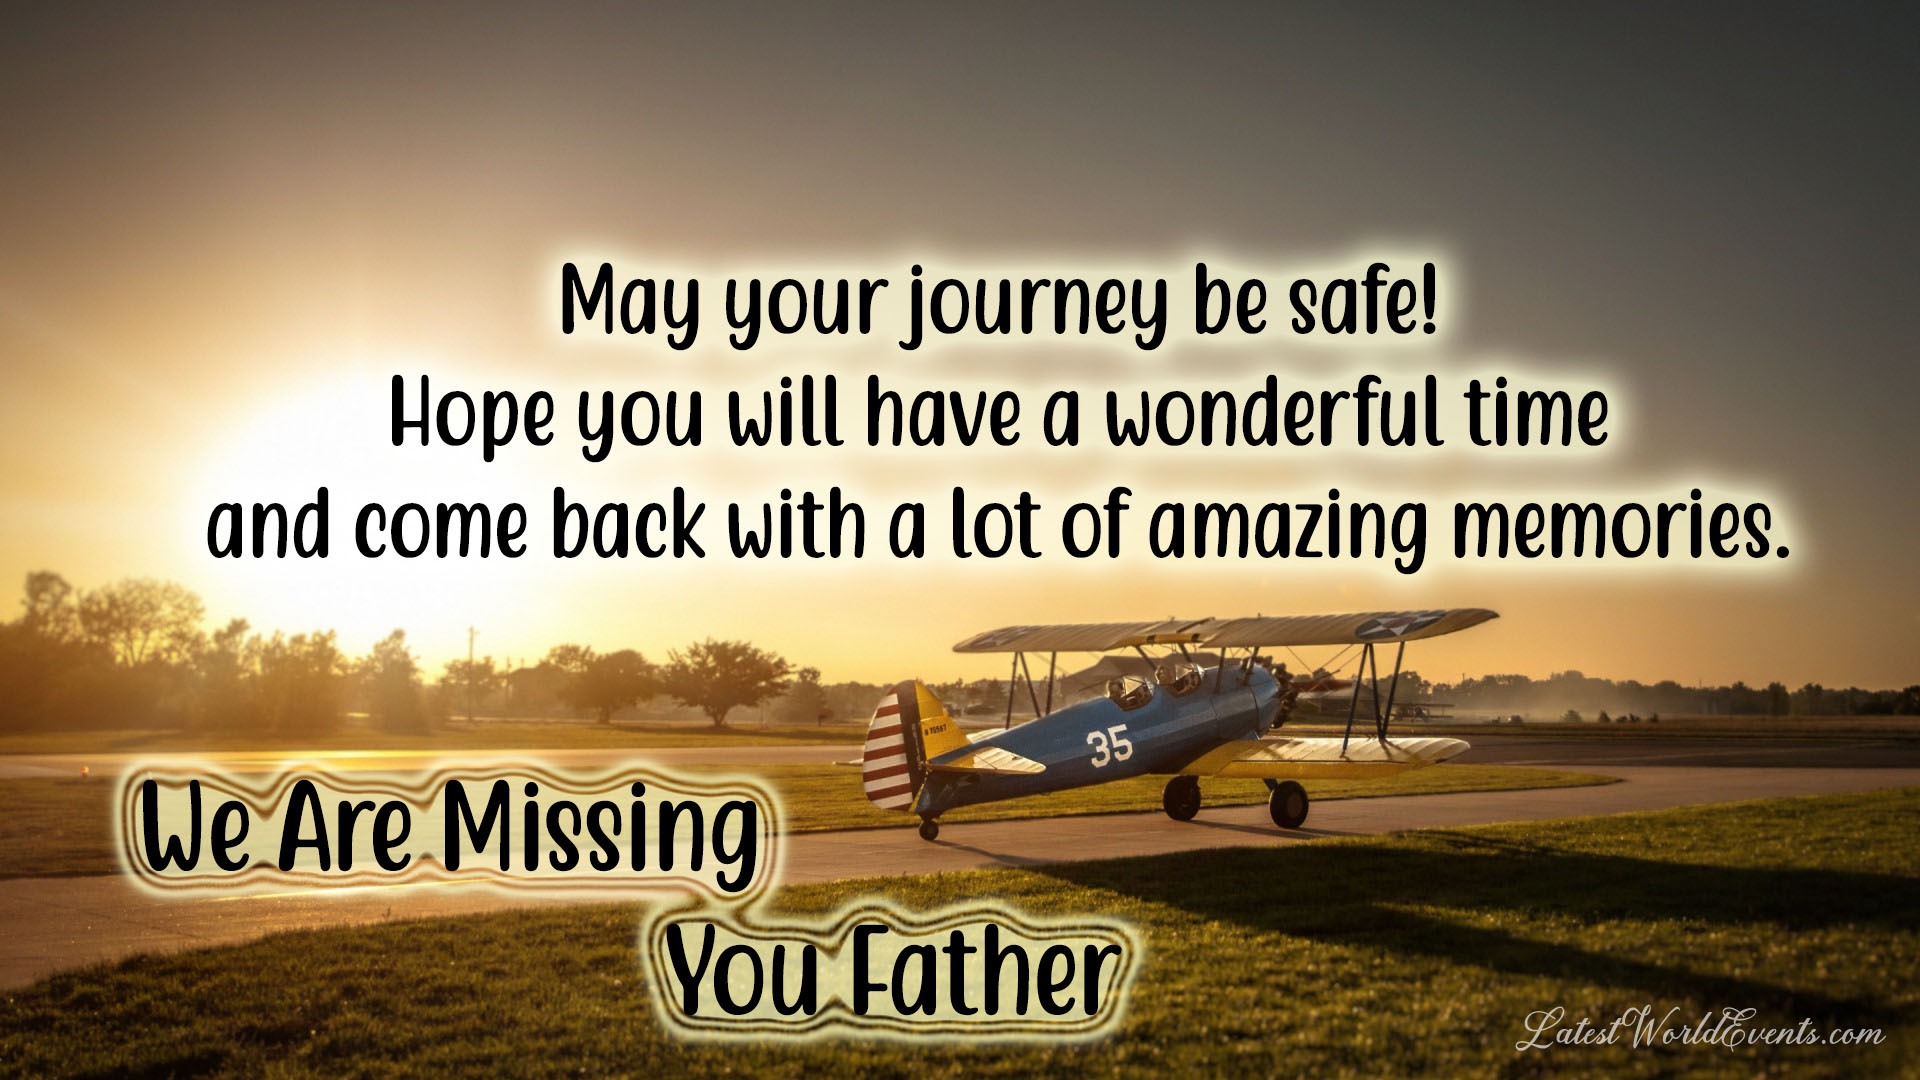 safe journey wishes quotes for dad have a nice journey quotes